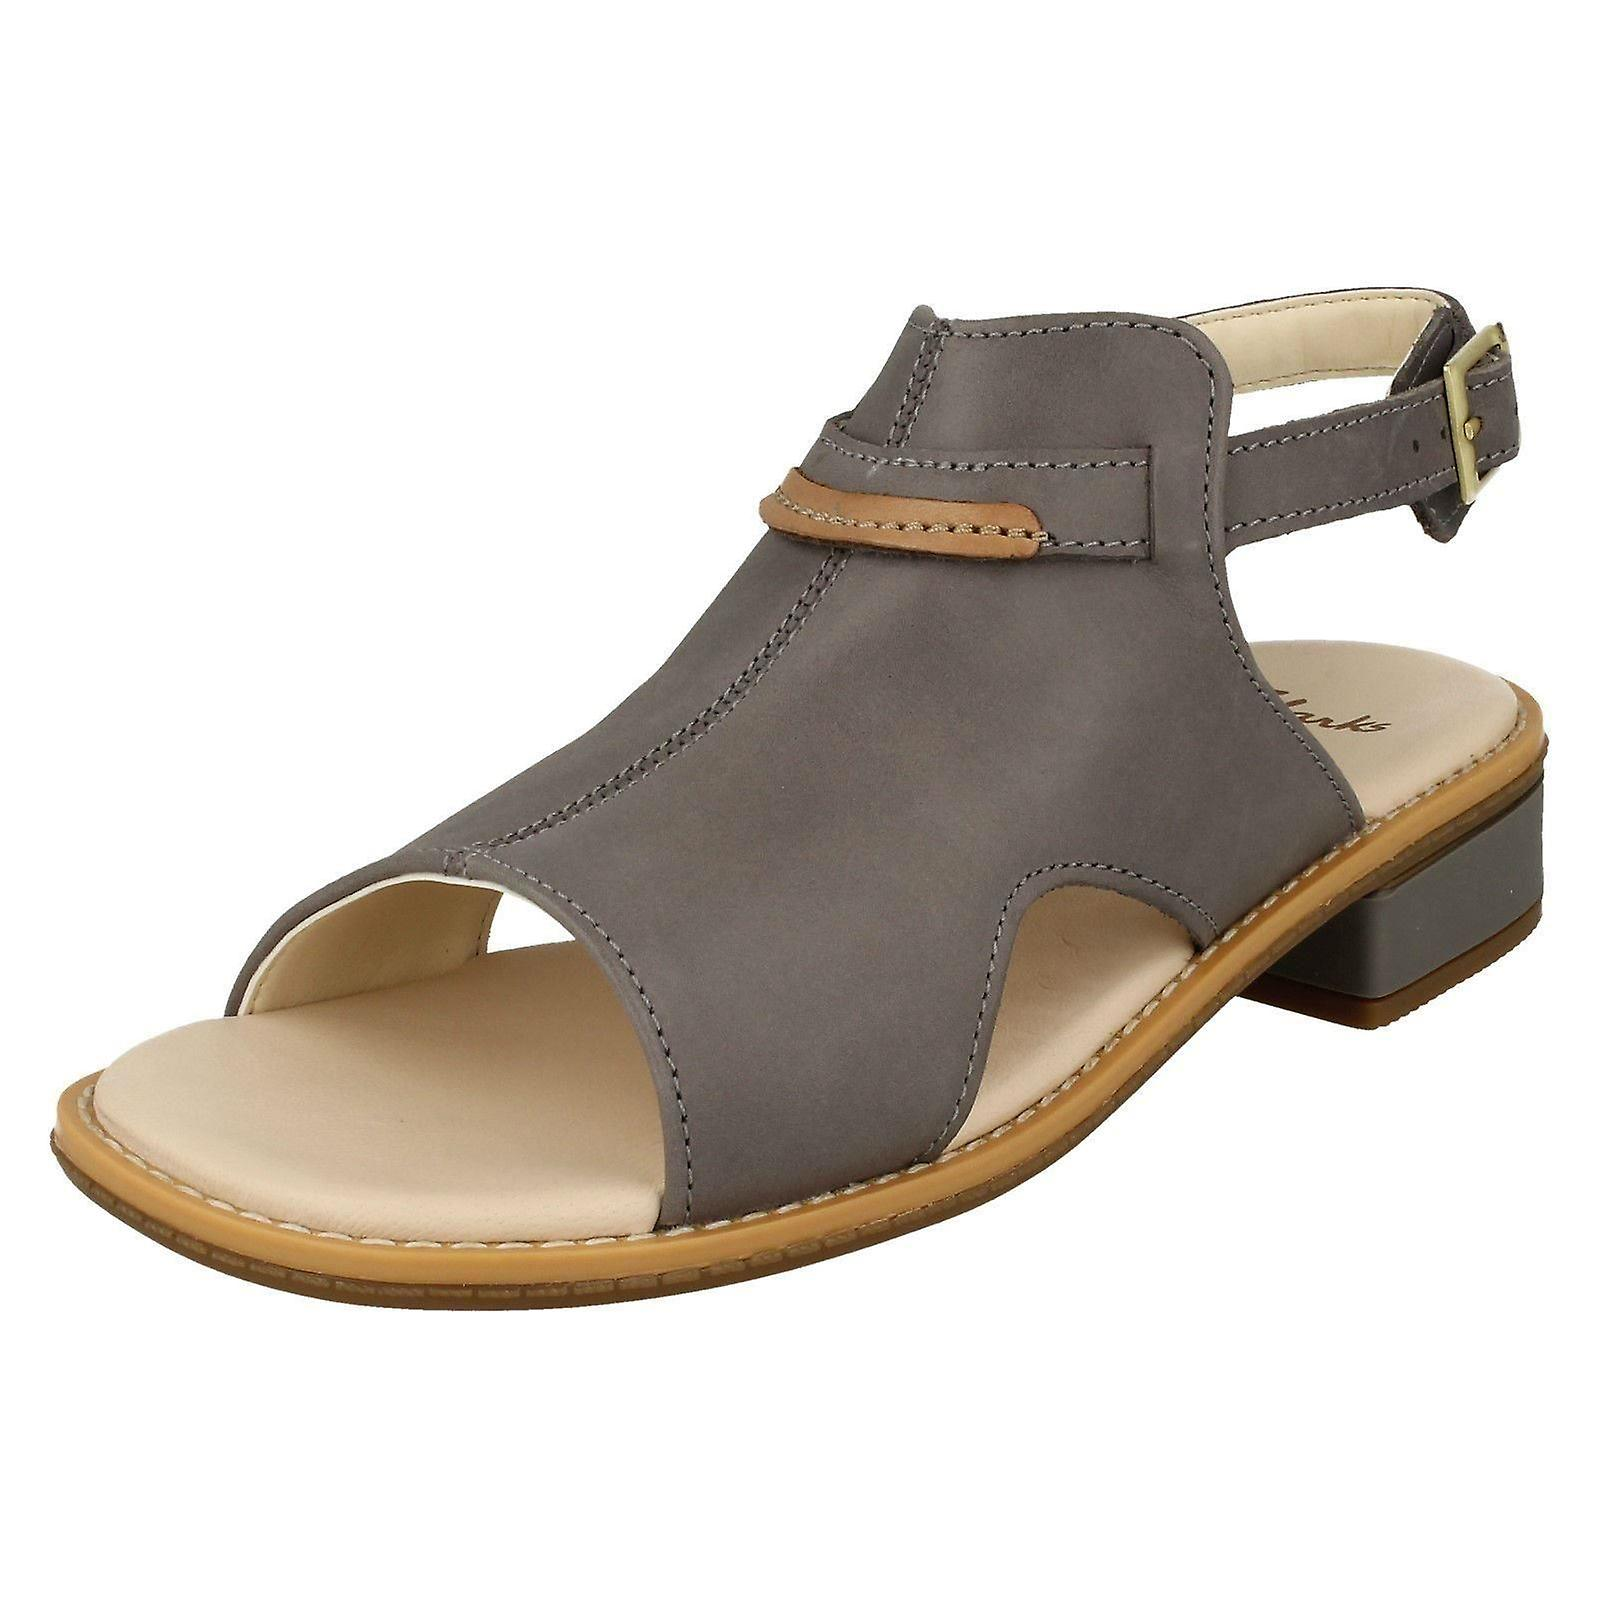 Jeunes filles Clarks talons bas Slingback Sandals Darcy Lily - Cuir gris - UK taille 1F - UE taille 33 - US taille 1,5 M